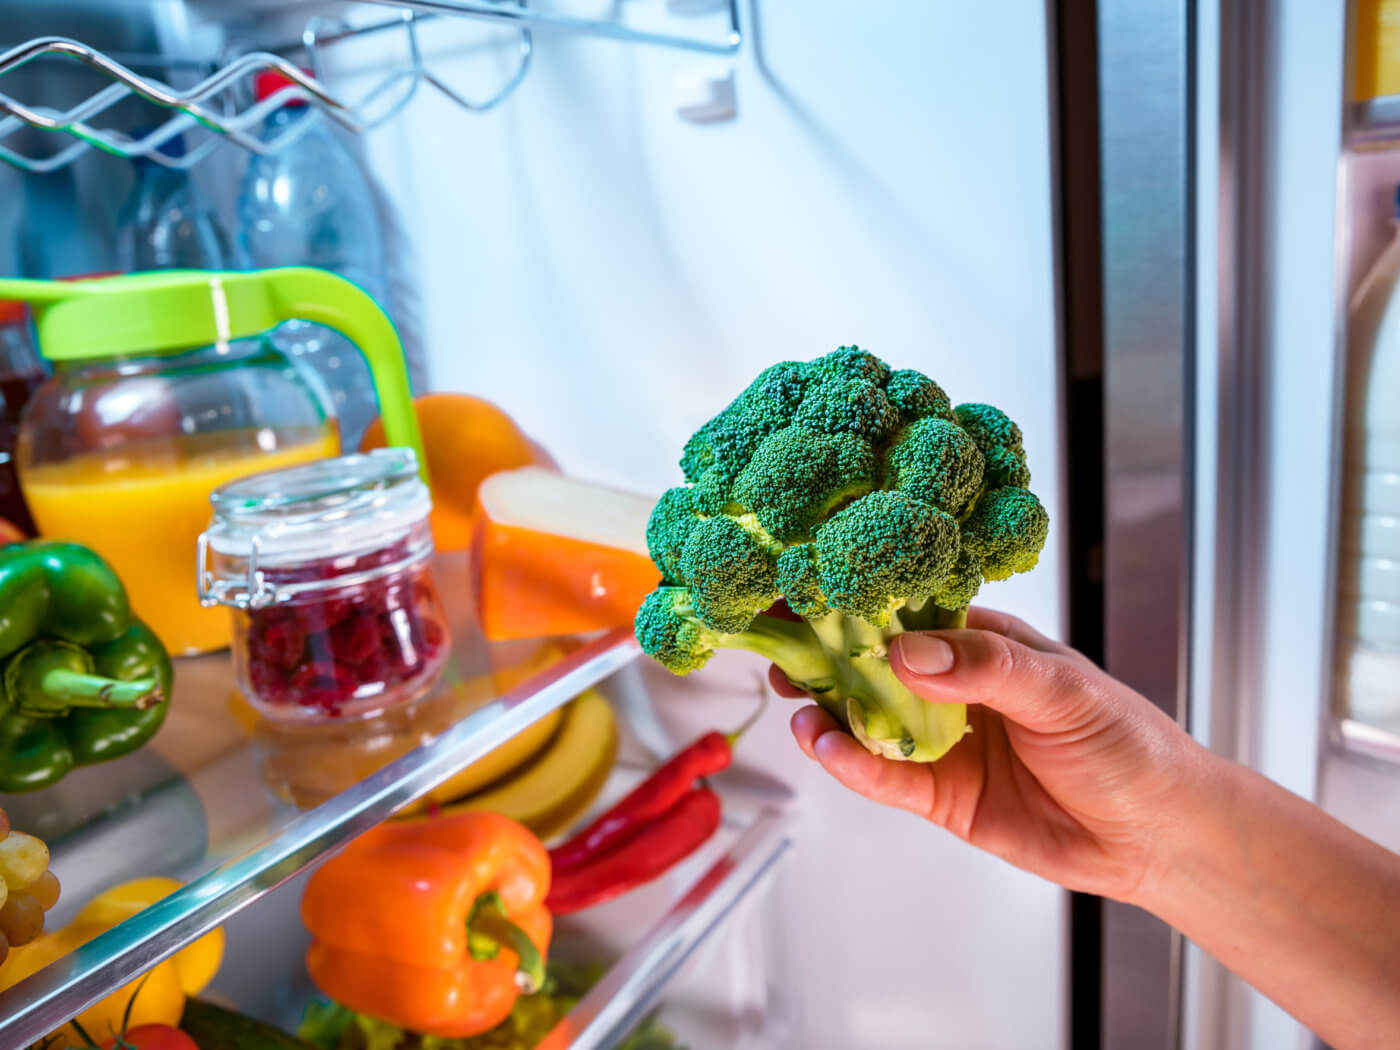 Woman takes the broccoli from the open refrigerator. Healthy food.